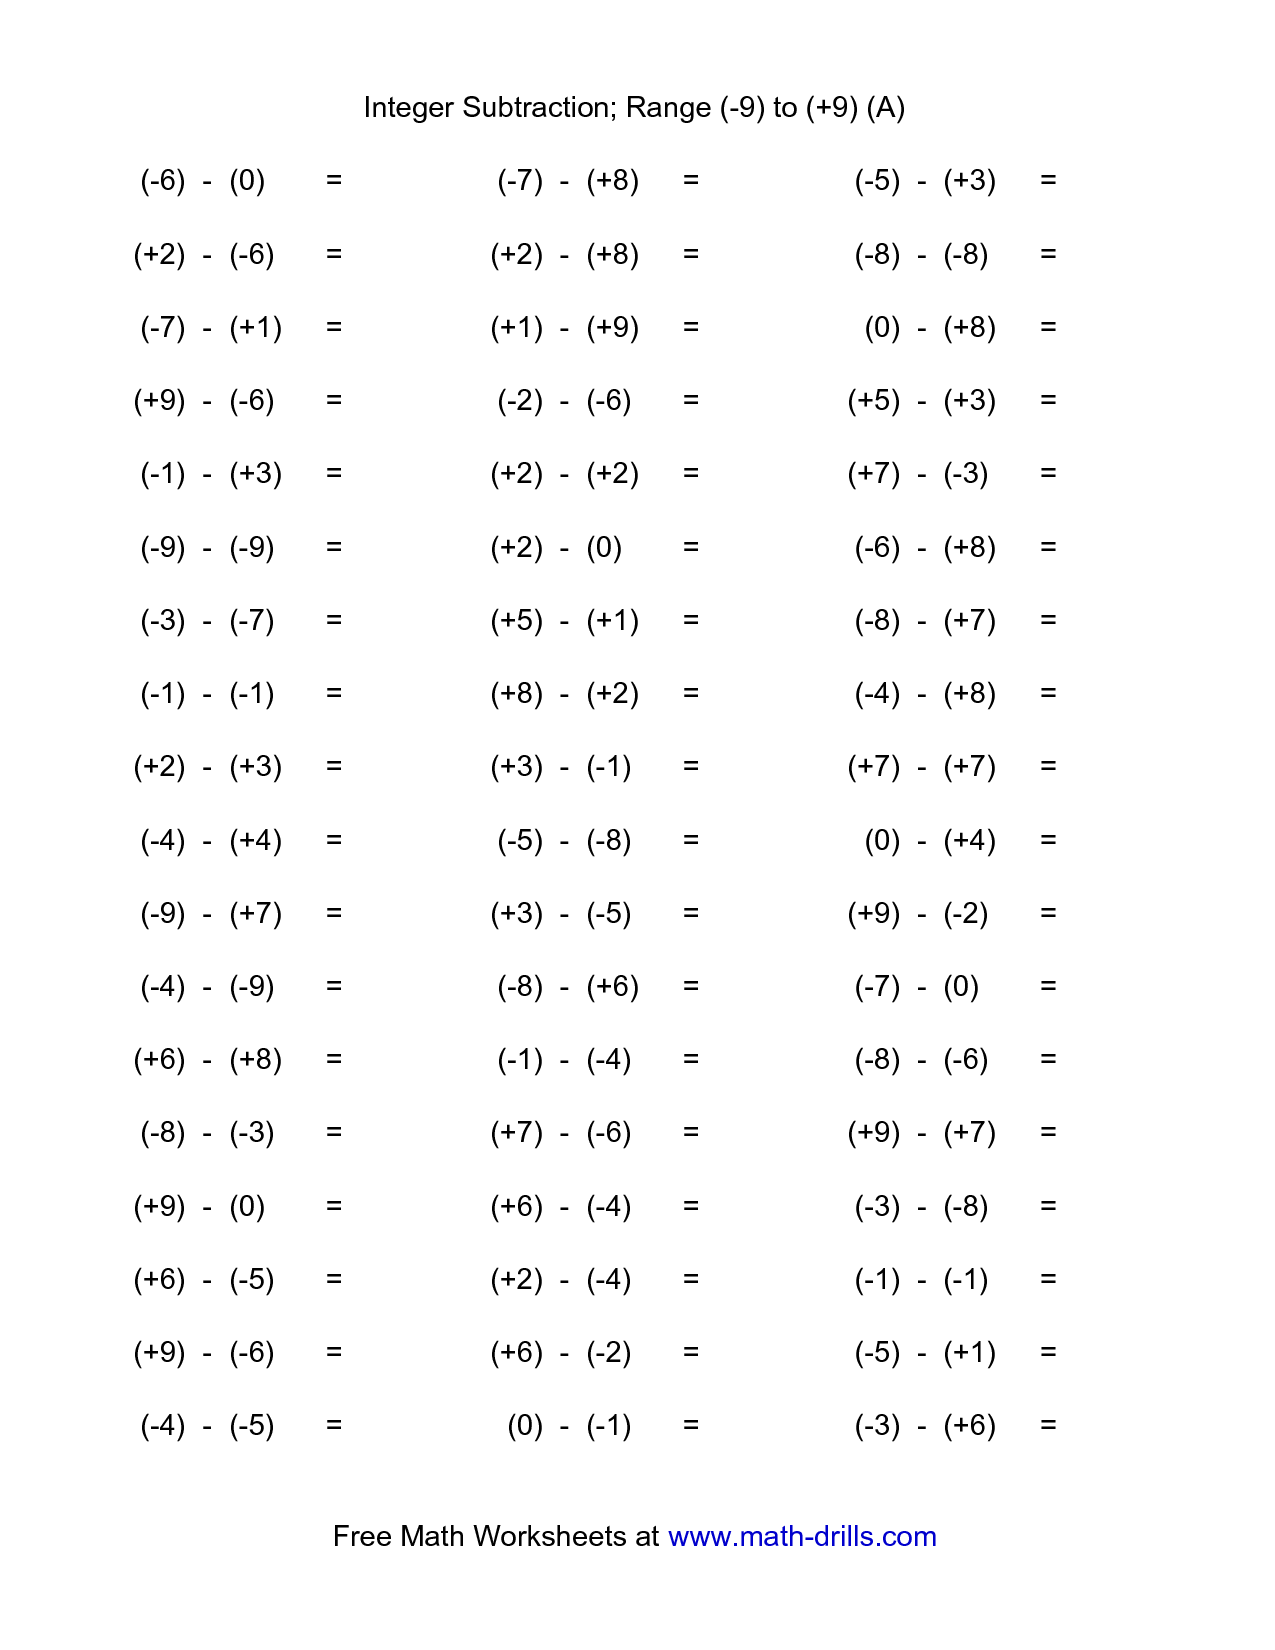 15 Best Images Of Integers Worksheets For 7th Grade